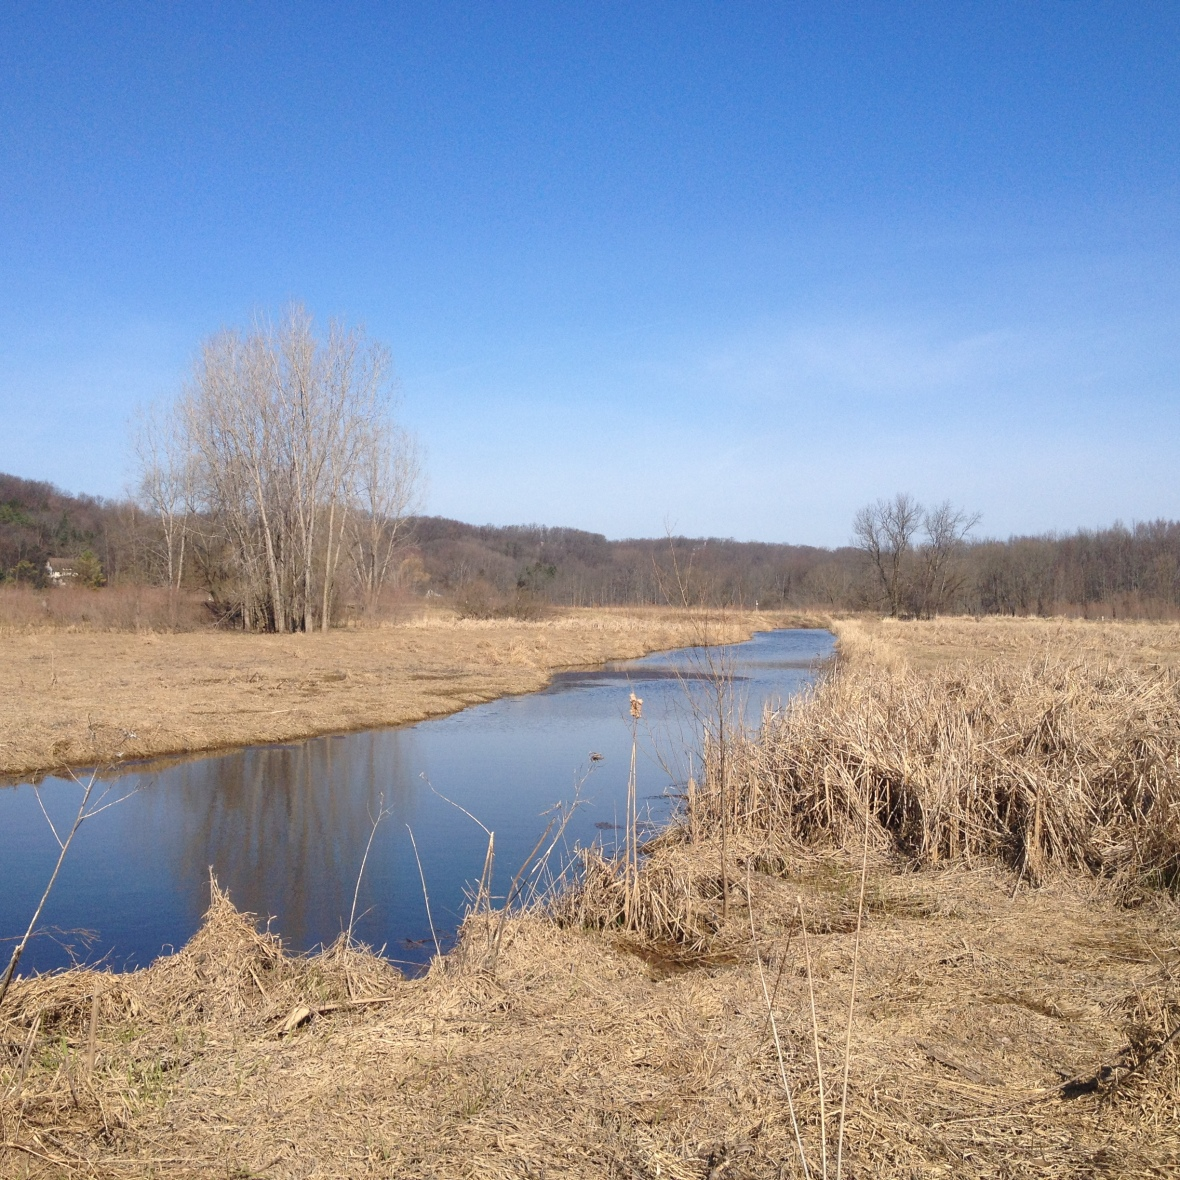 Early spring nettles can be found along creek banks and riverbeds. Make sure to gather nettles upstream from farms or any factory to avoid pollution.